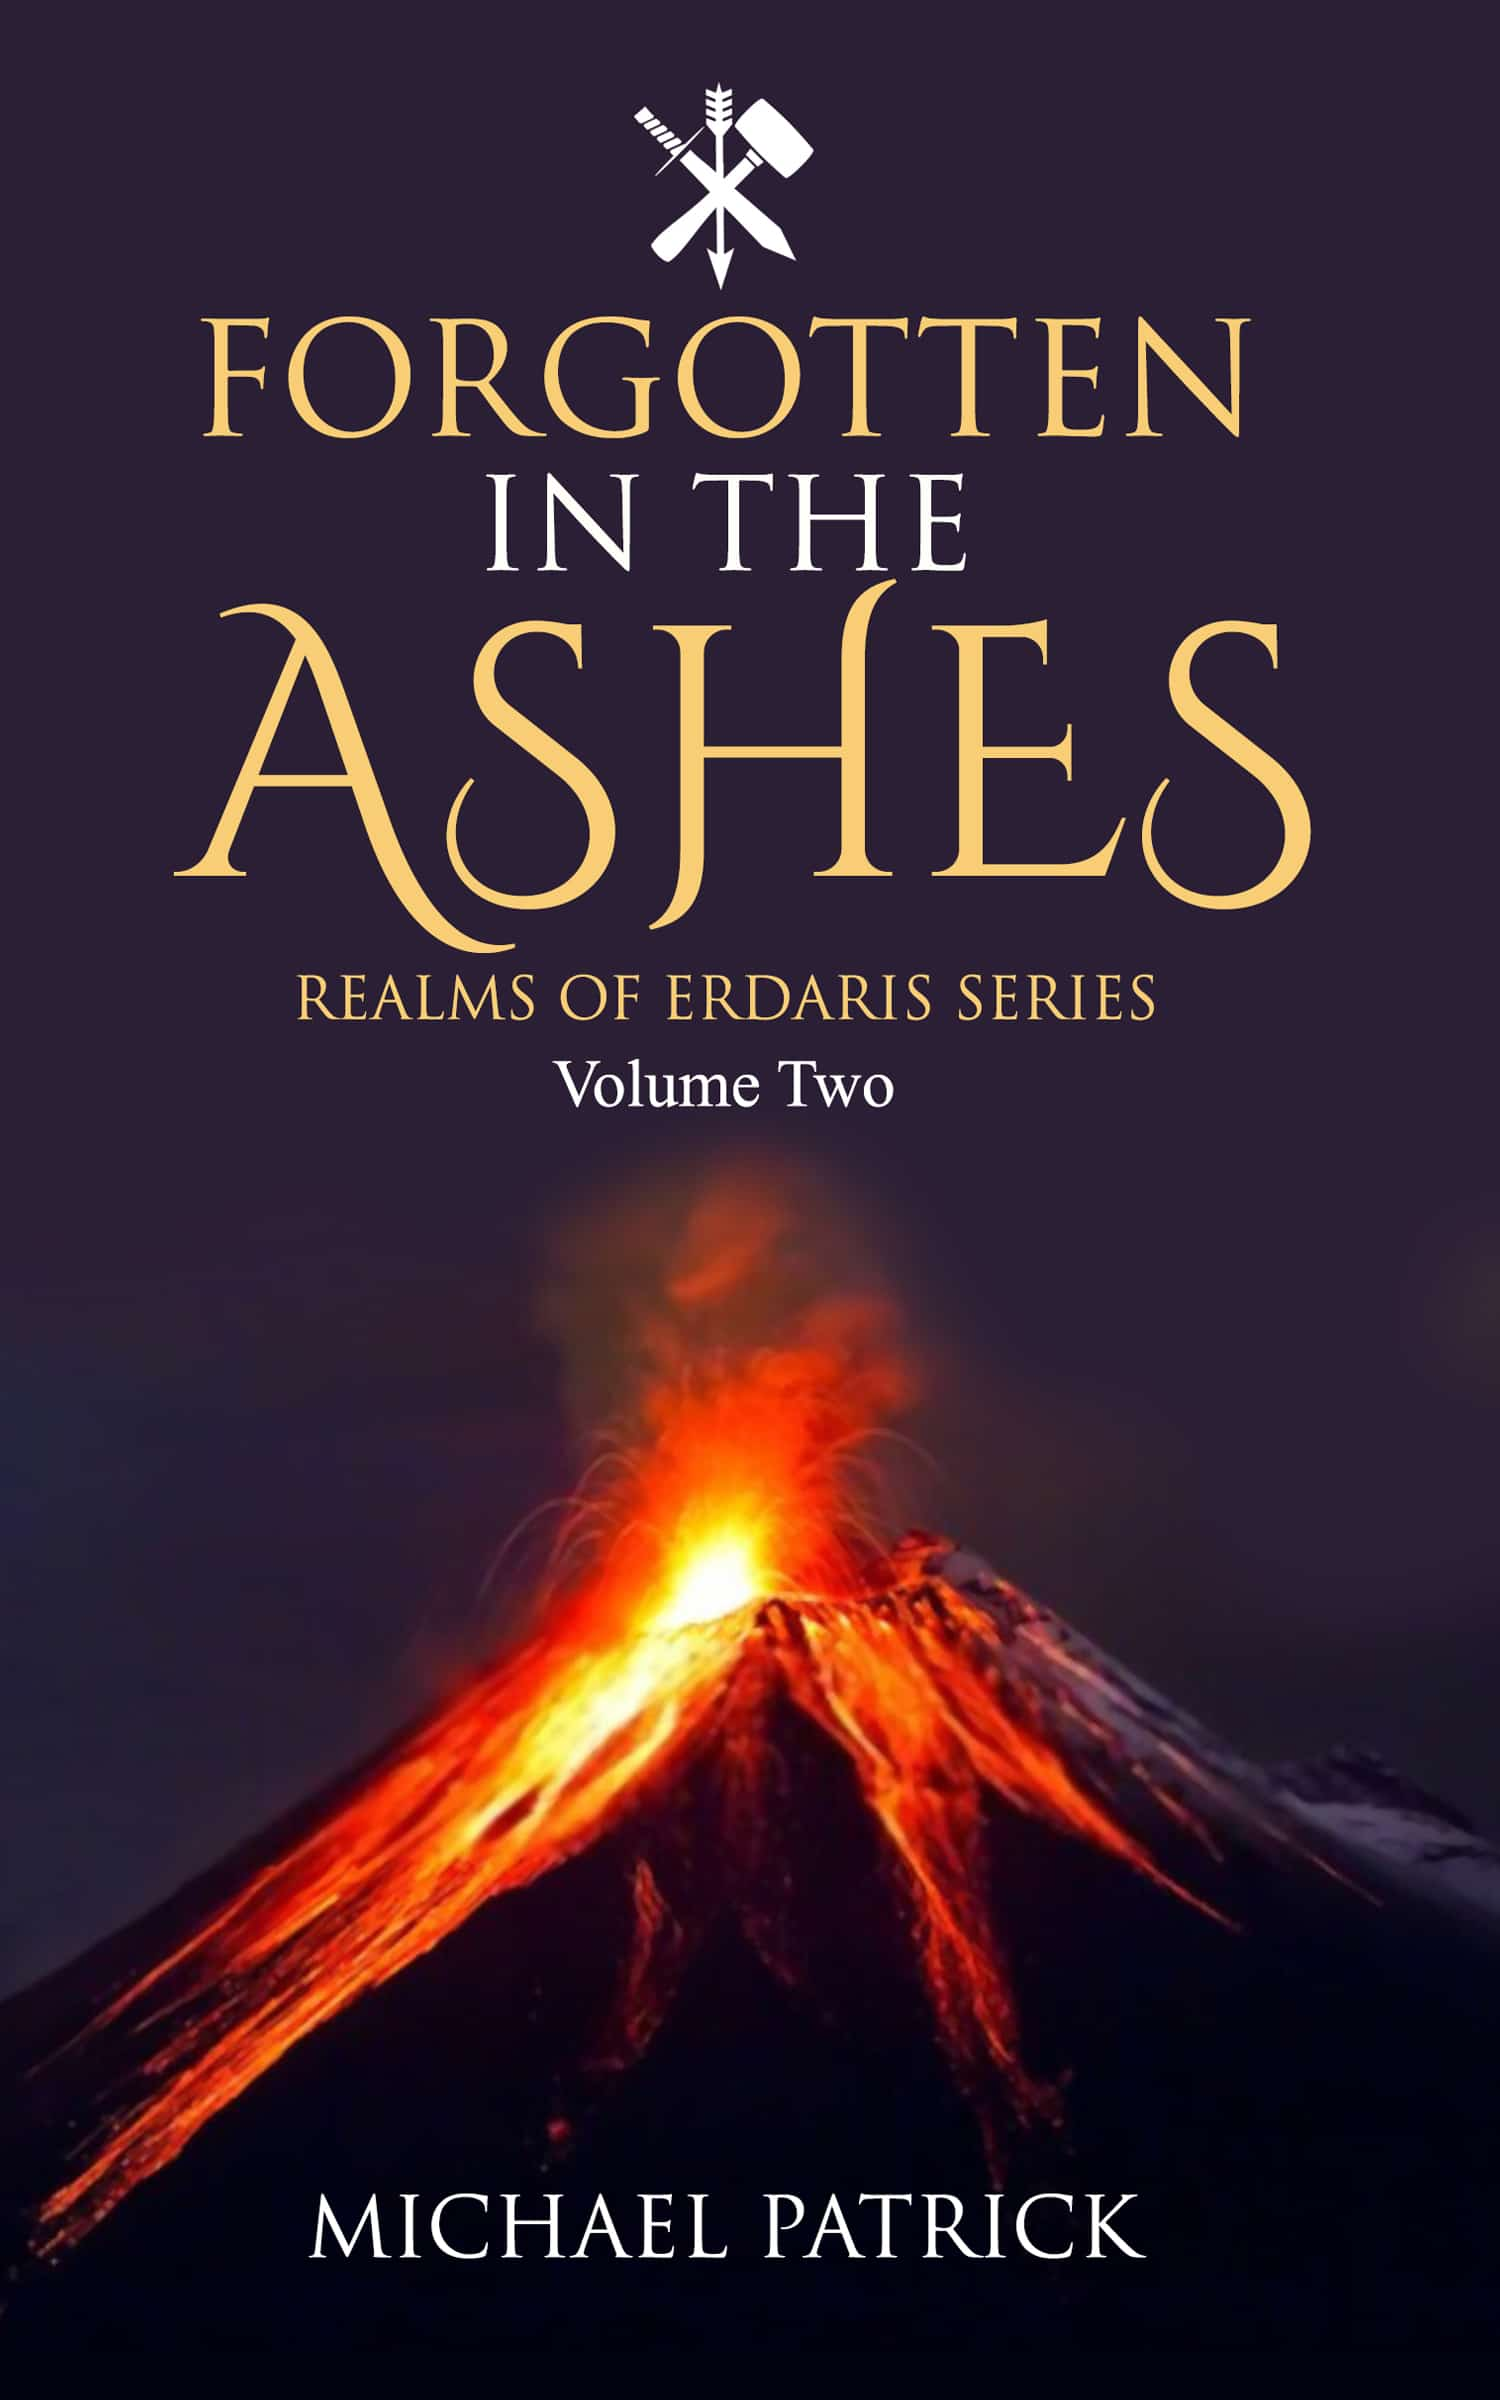 Realms of Erdaris: Forgotten In The Ashes by Michael Patrick